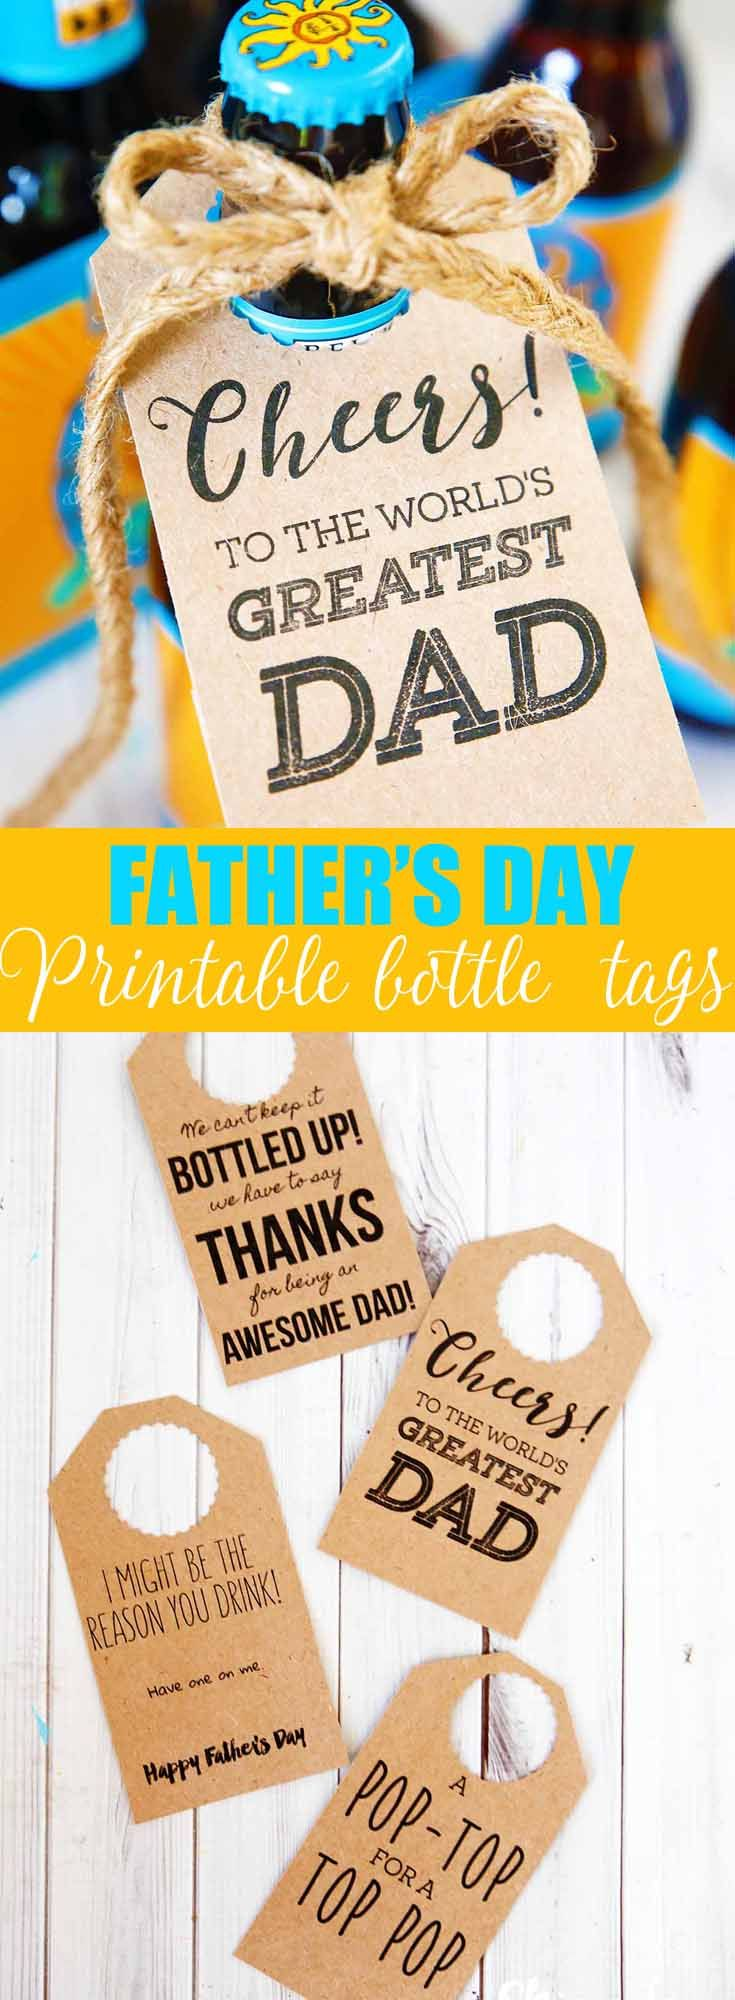 Free printable Father's Day gift tag to pair with his favorite bottled beer or soda.